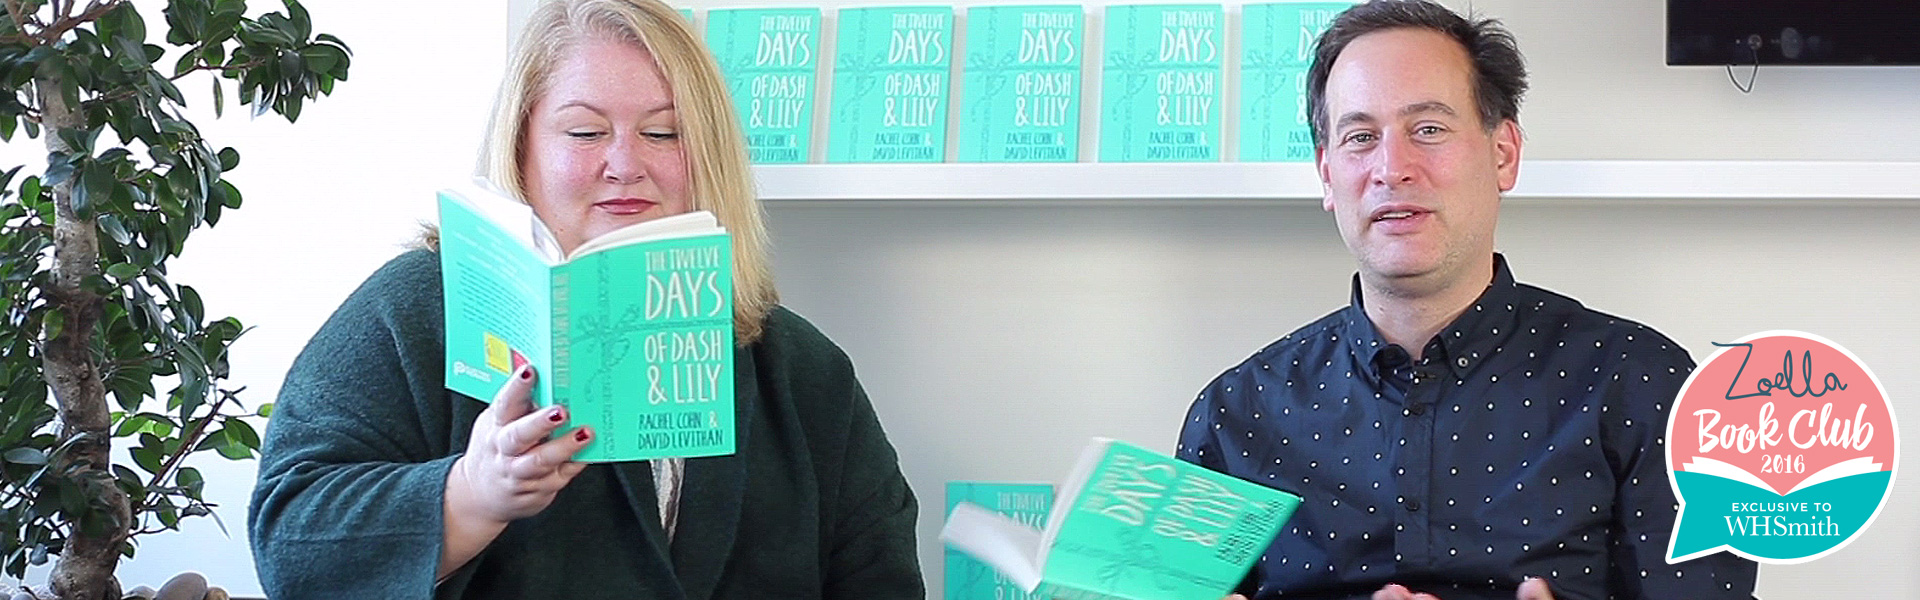 Exclusive Video! Rachel Cohn and David Levithan Discuss The Twelve Days of Dash and Lily